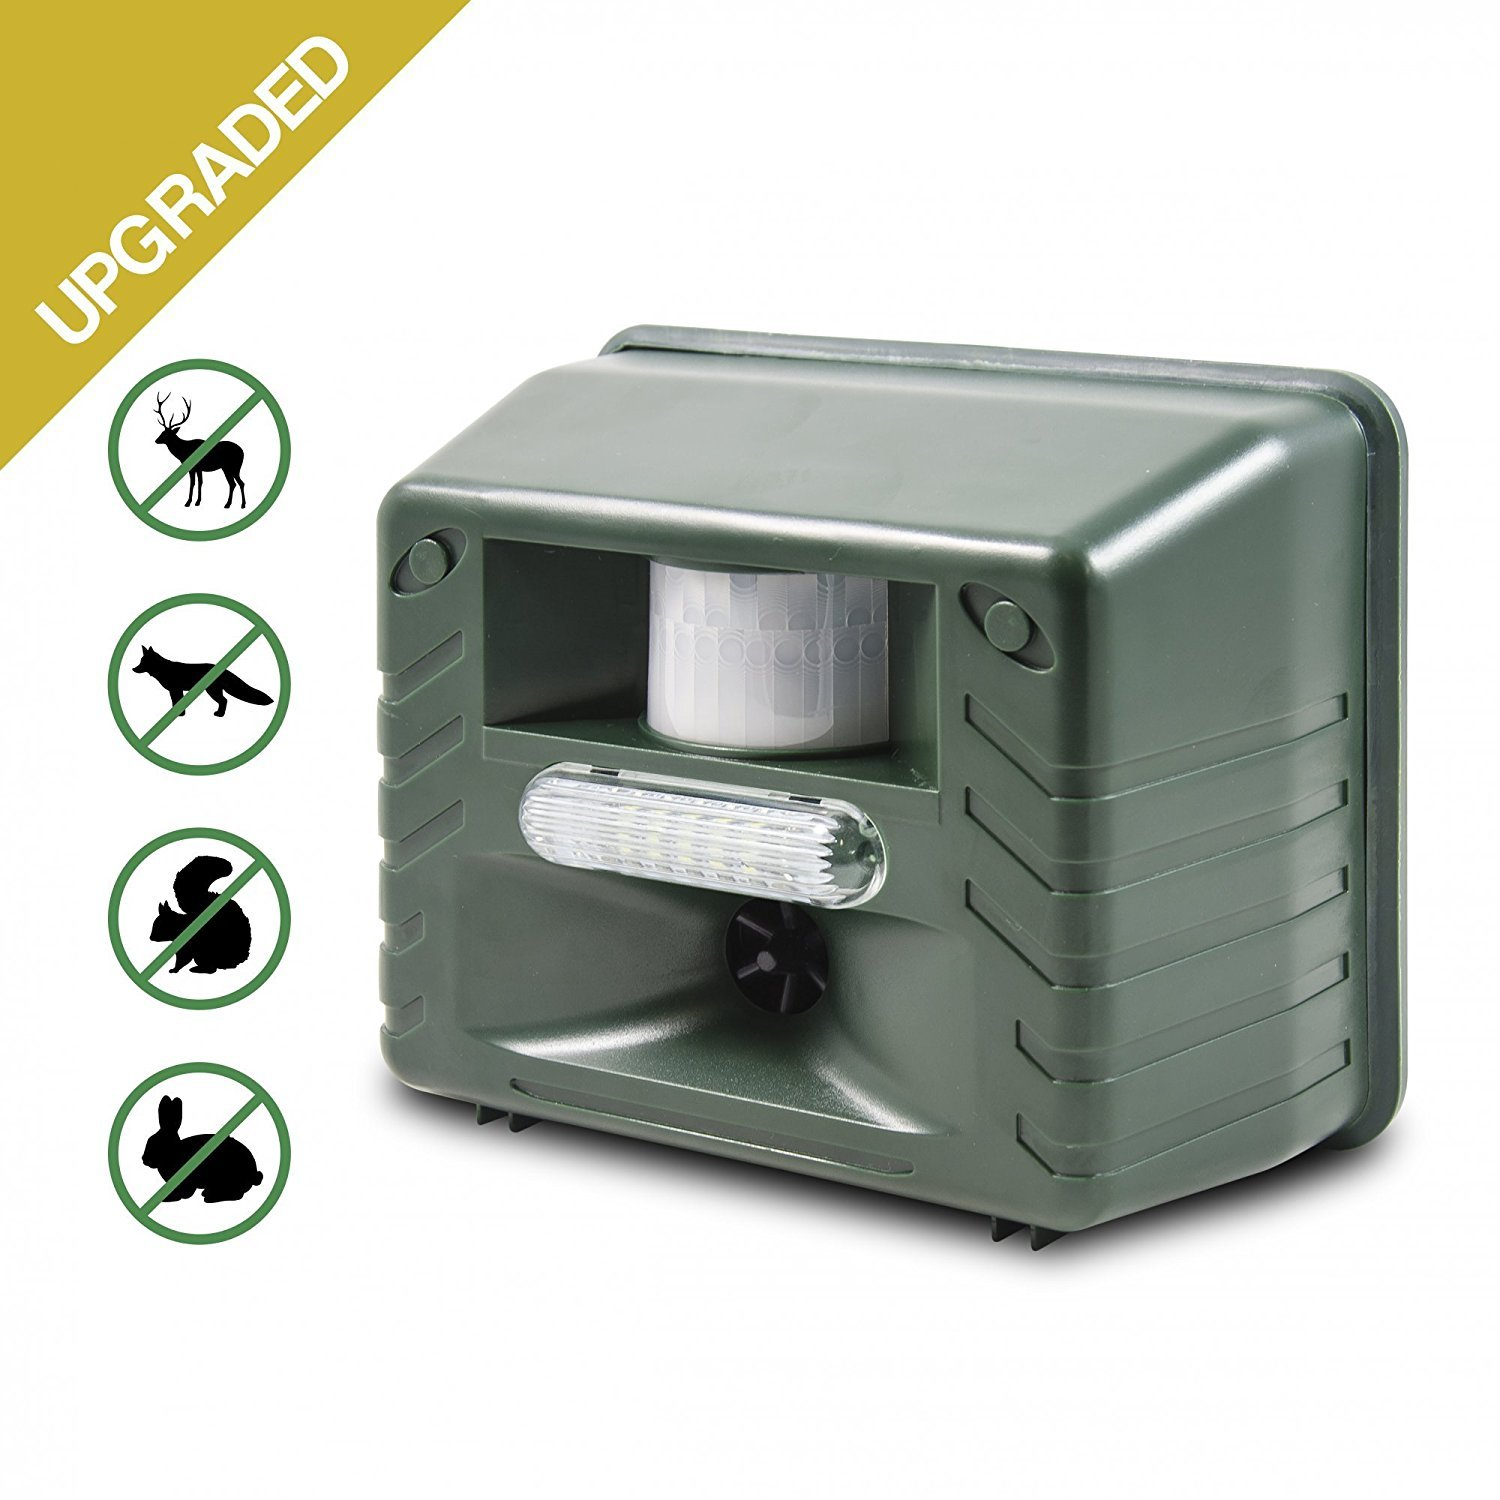 Aspectek - Yard Sentinel STROBE- Ultrasonic Outdoor Animal Control Pest Repeller Motion Detector - Rodents, Deer, Cats, Dogs, Mice Repellent Device, Includes Extension Cord Others